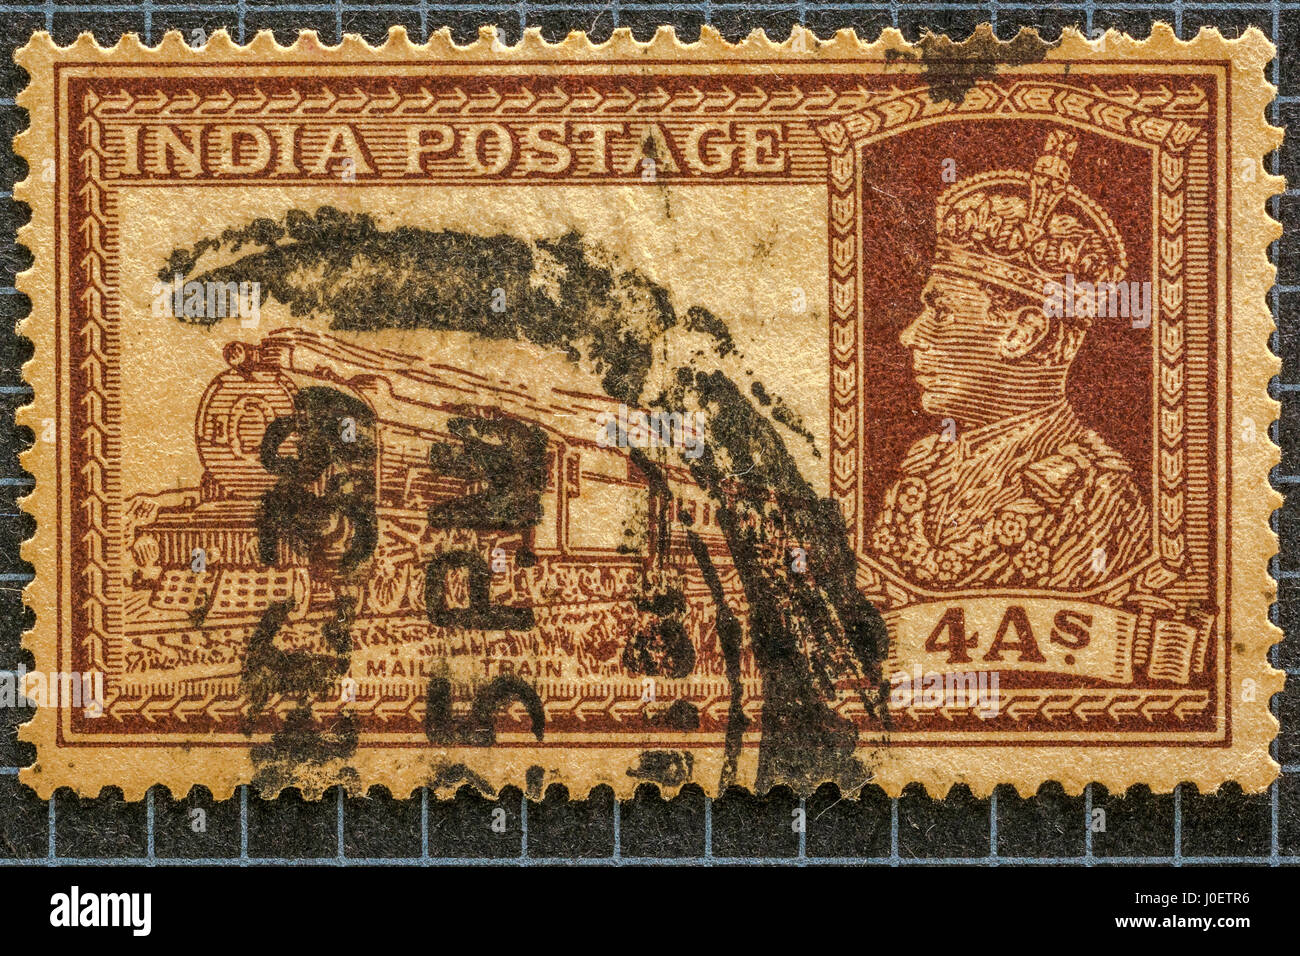 Transport mail train 4 as, postage stamps, india, asia - Stock Image